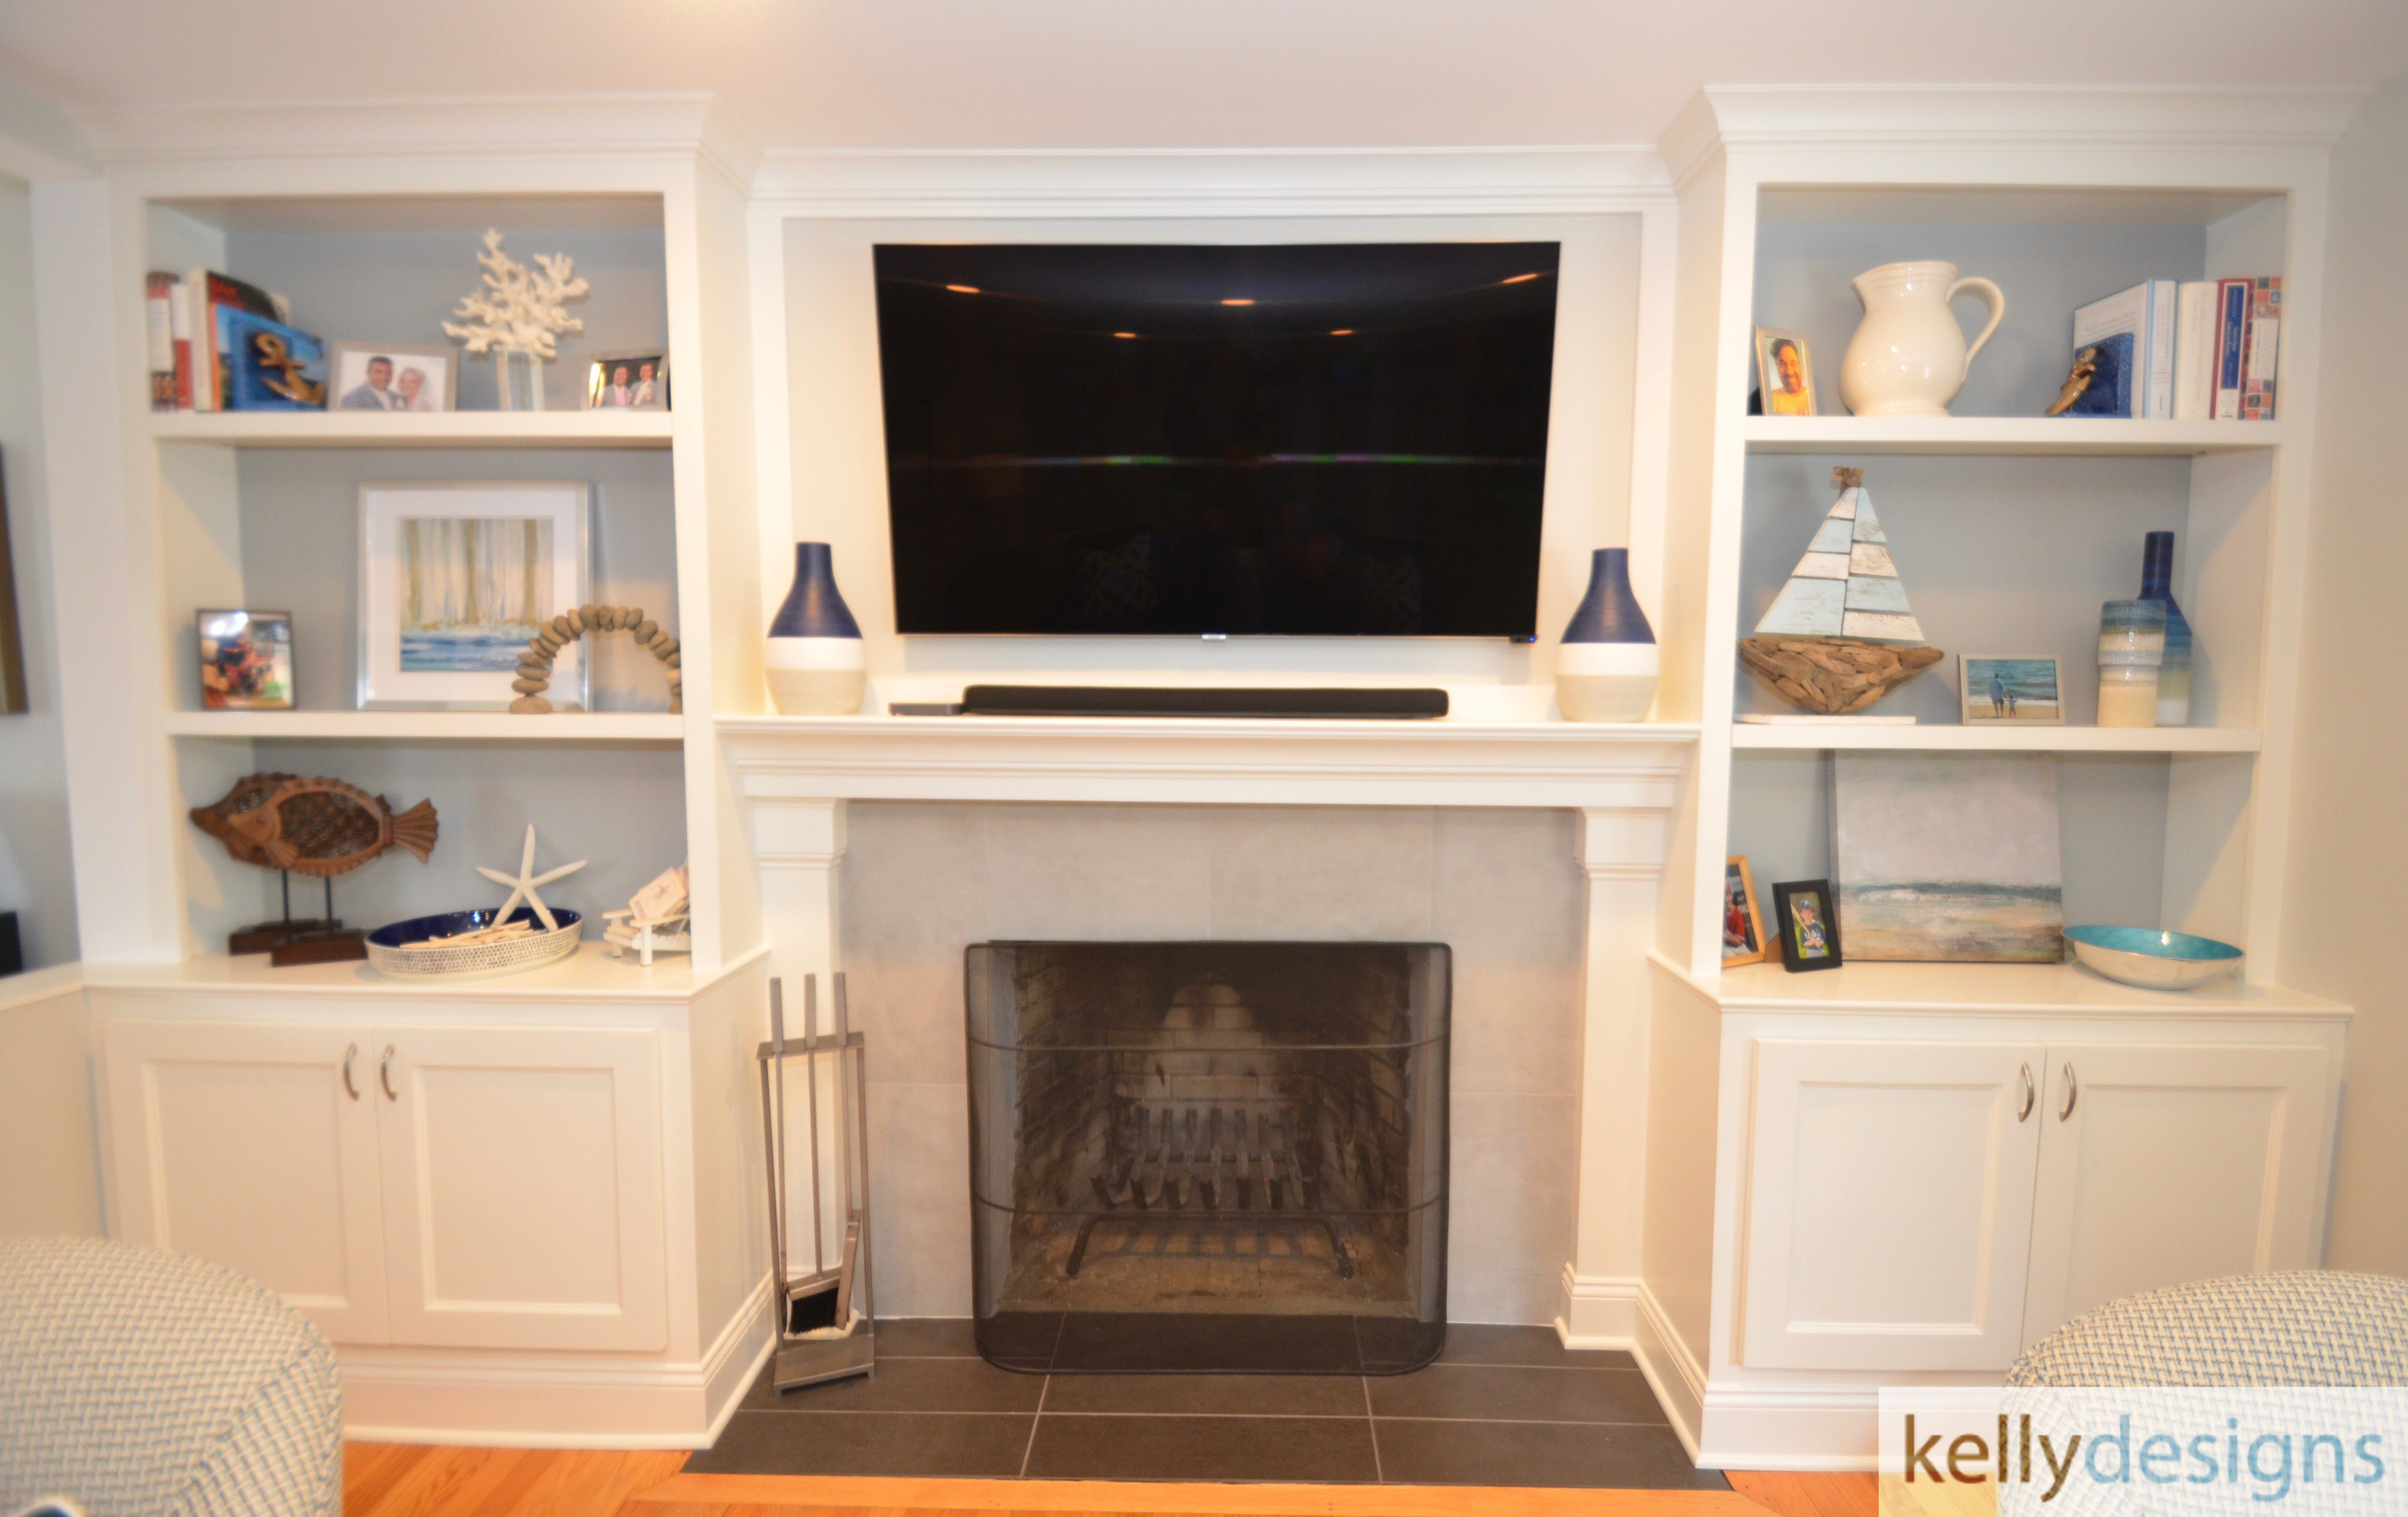 Happy on Hurd - Interior Design by kellydesigns